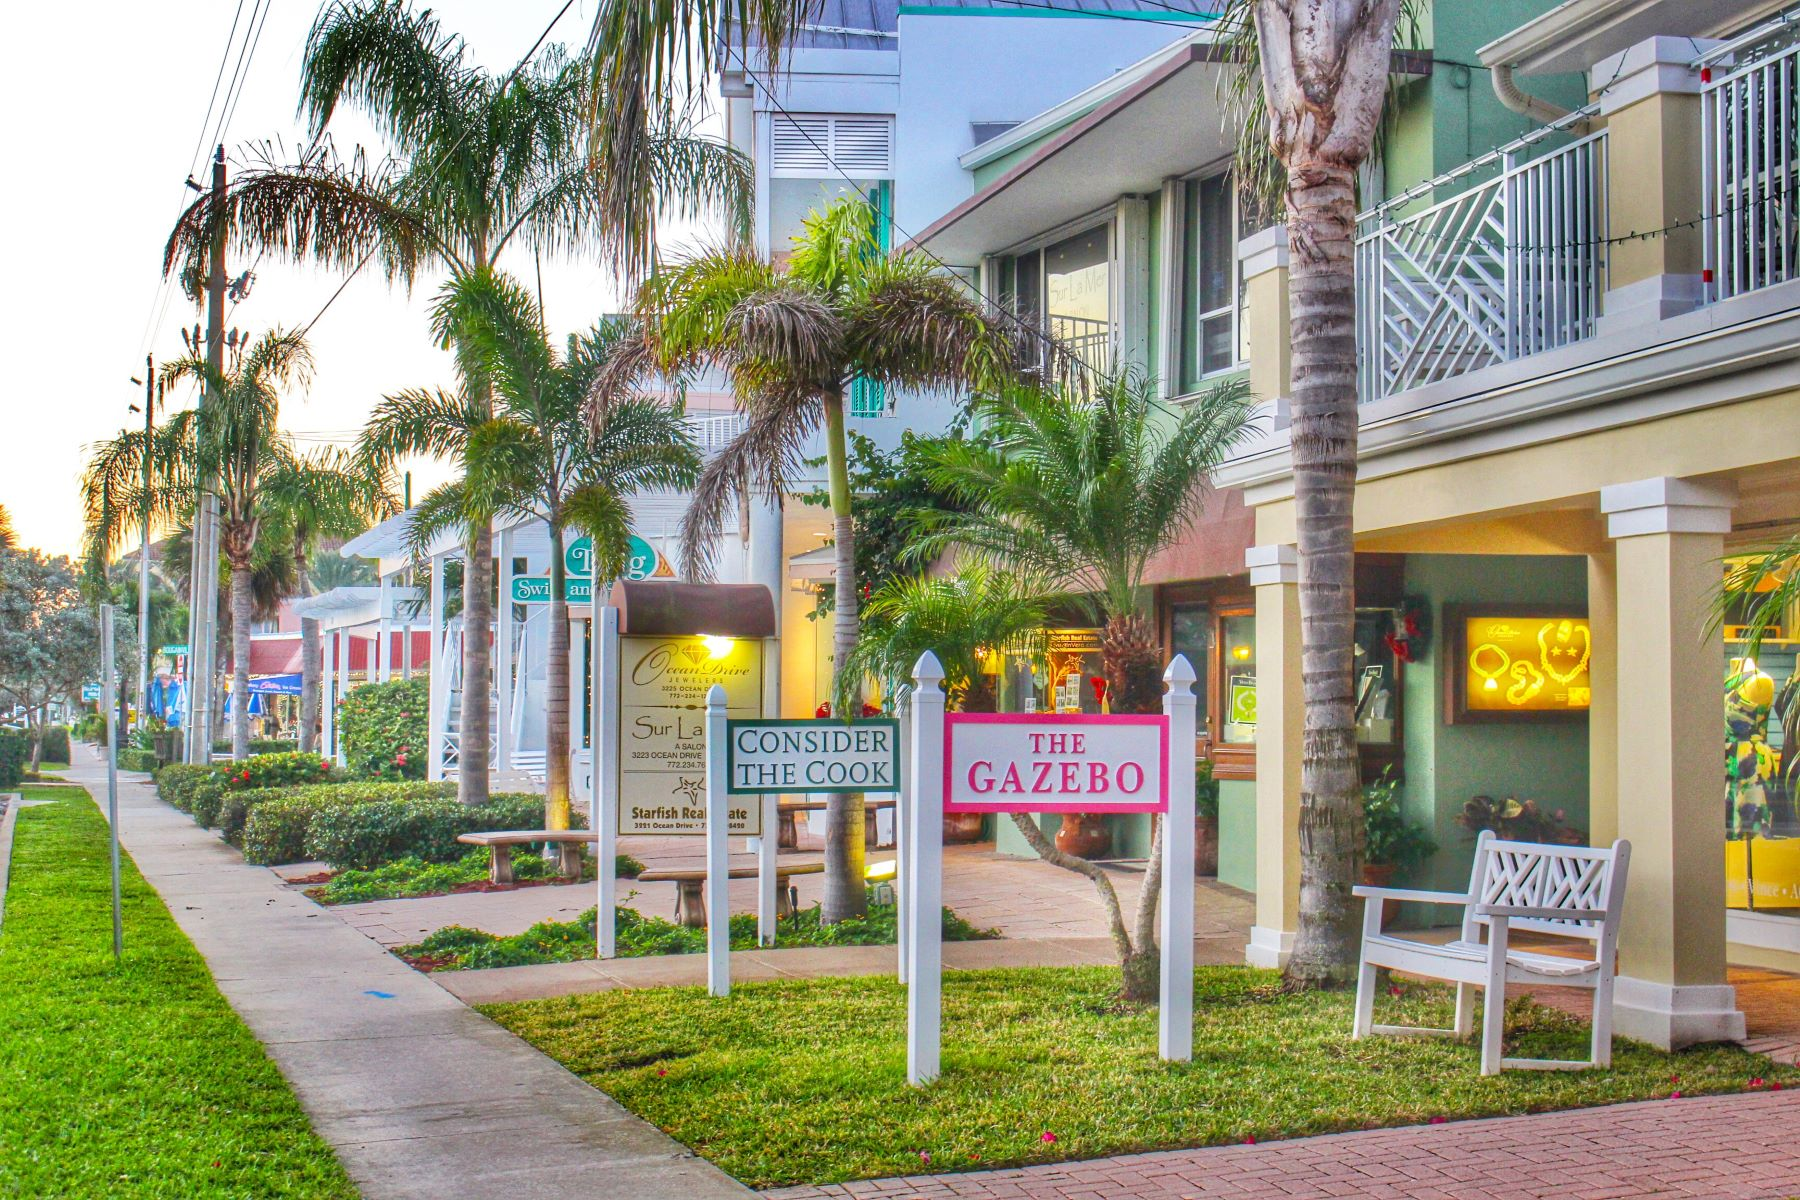 Additional photo for property listing at 900 River Club Drive & Highway A1 A, Vero Beach, FL 900 River Club Drive & Highway A1 A Vero Beach, Florida 32963 United States